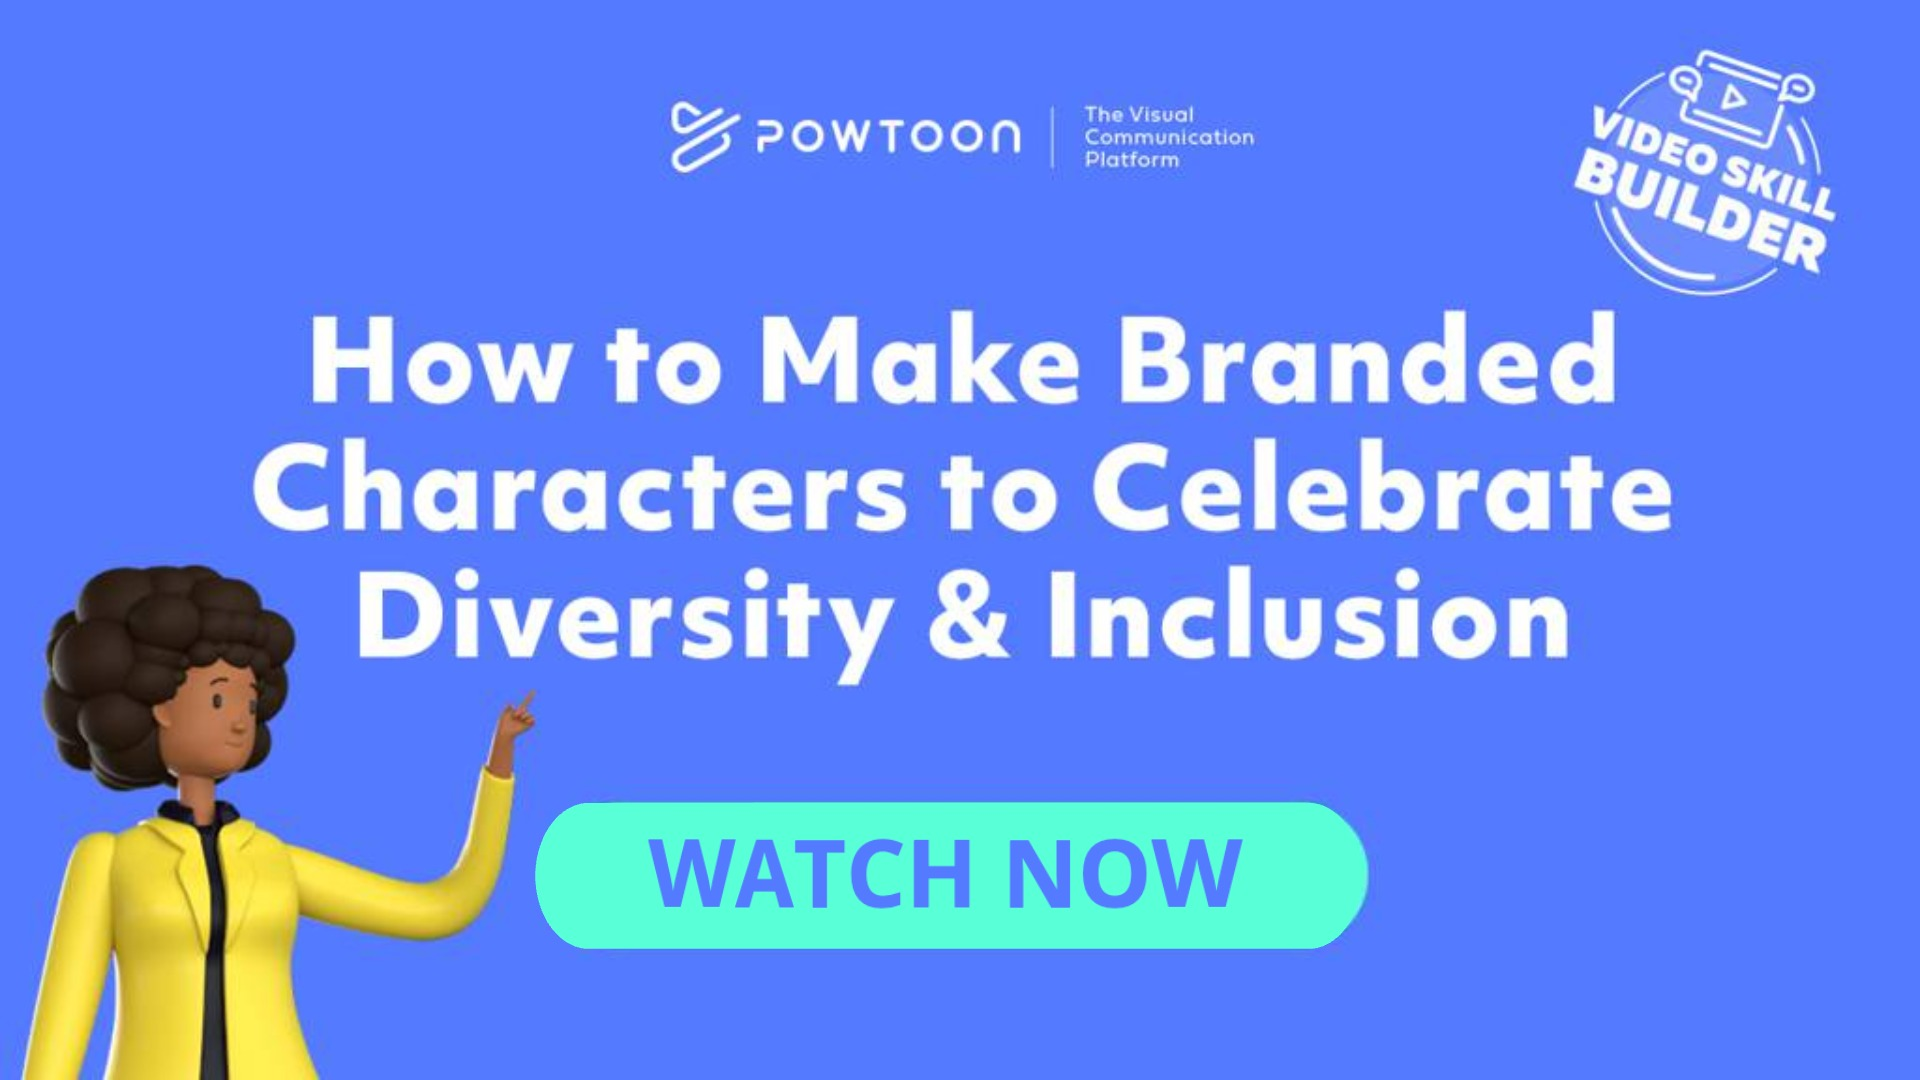 how to build branded characters to celebrate diversity & inclusion